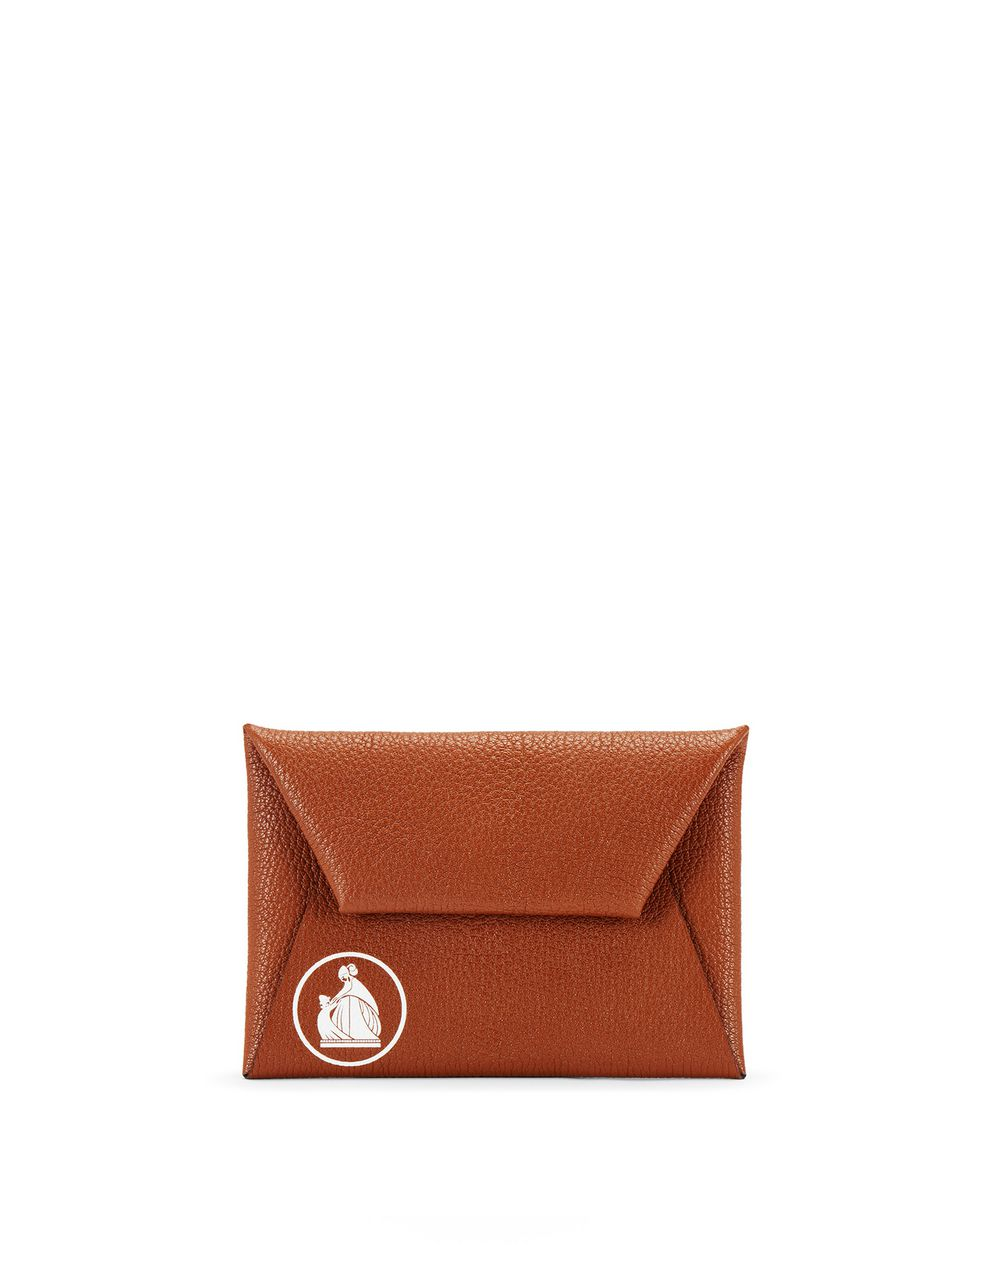 EARTH-COLORED ENVELOPE CLUTCH - Lanvin